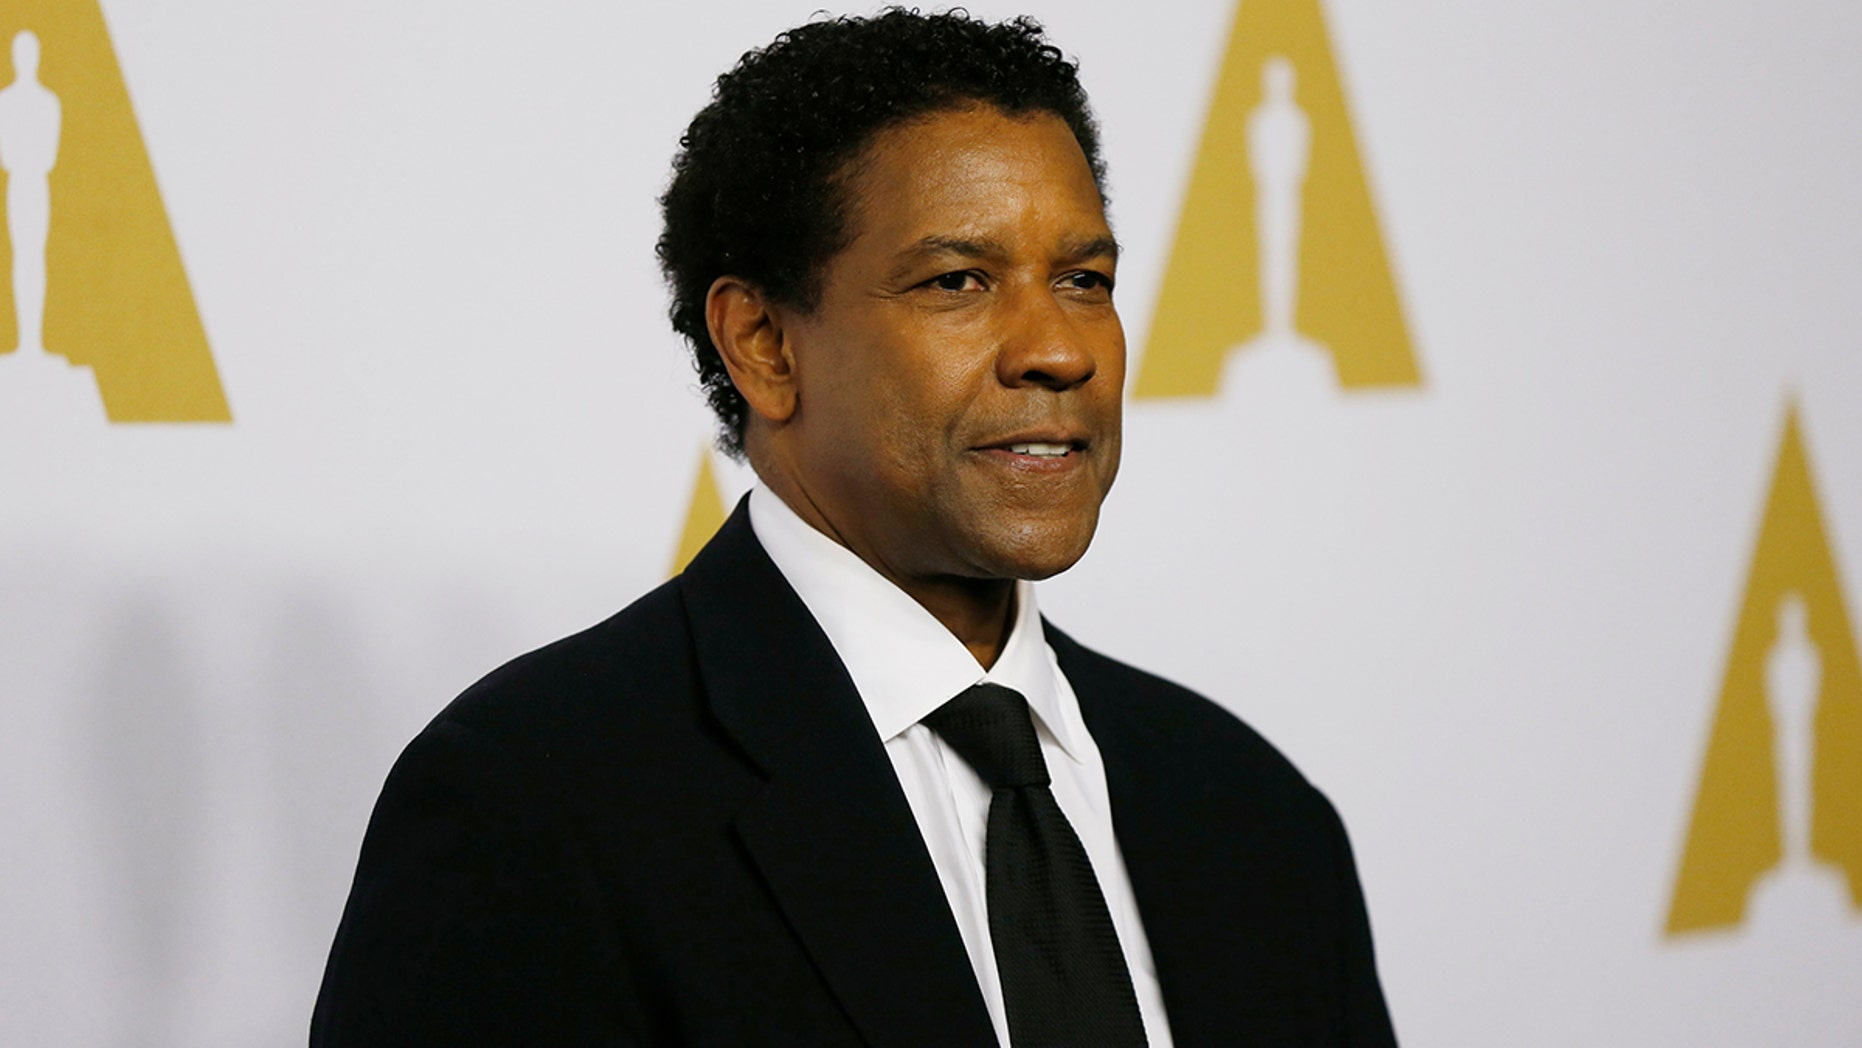 Actor Denzel Washington arrives at the 89th Oscars Nominee Luncheon in Beverly Hills, California, U.S., February 6, 2017.  REUTERS/Mario Anzuoni - HT1ED261POIIL